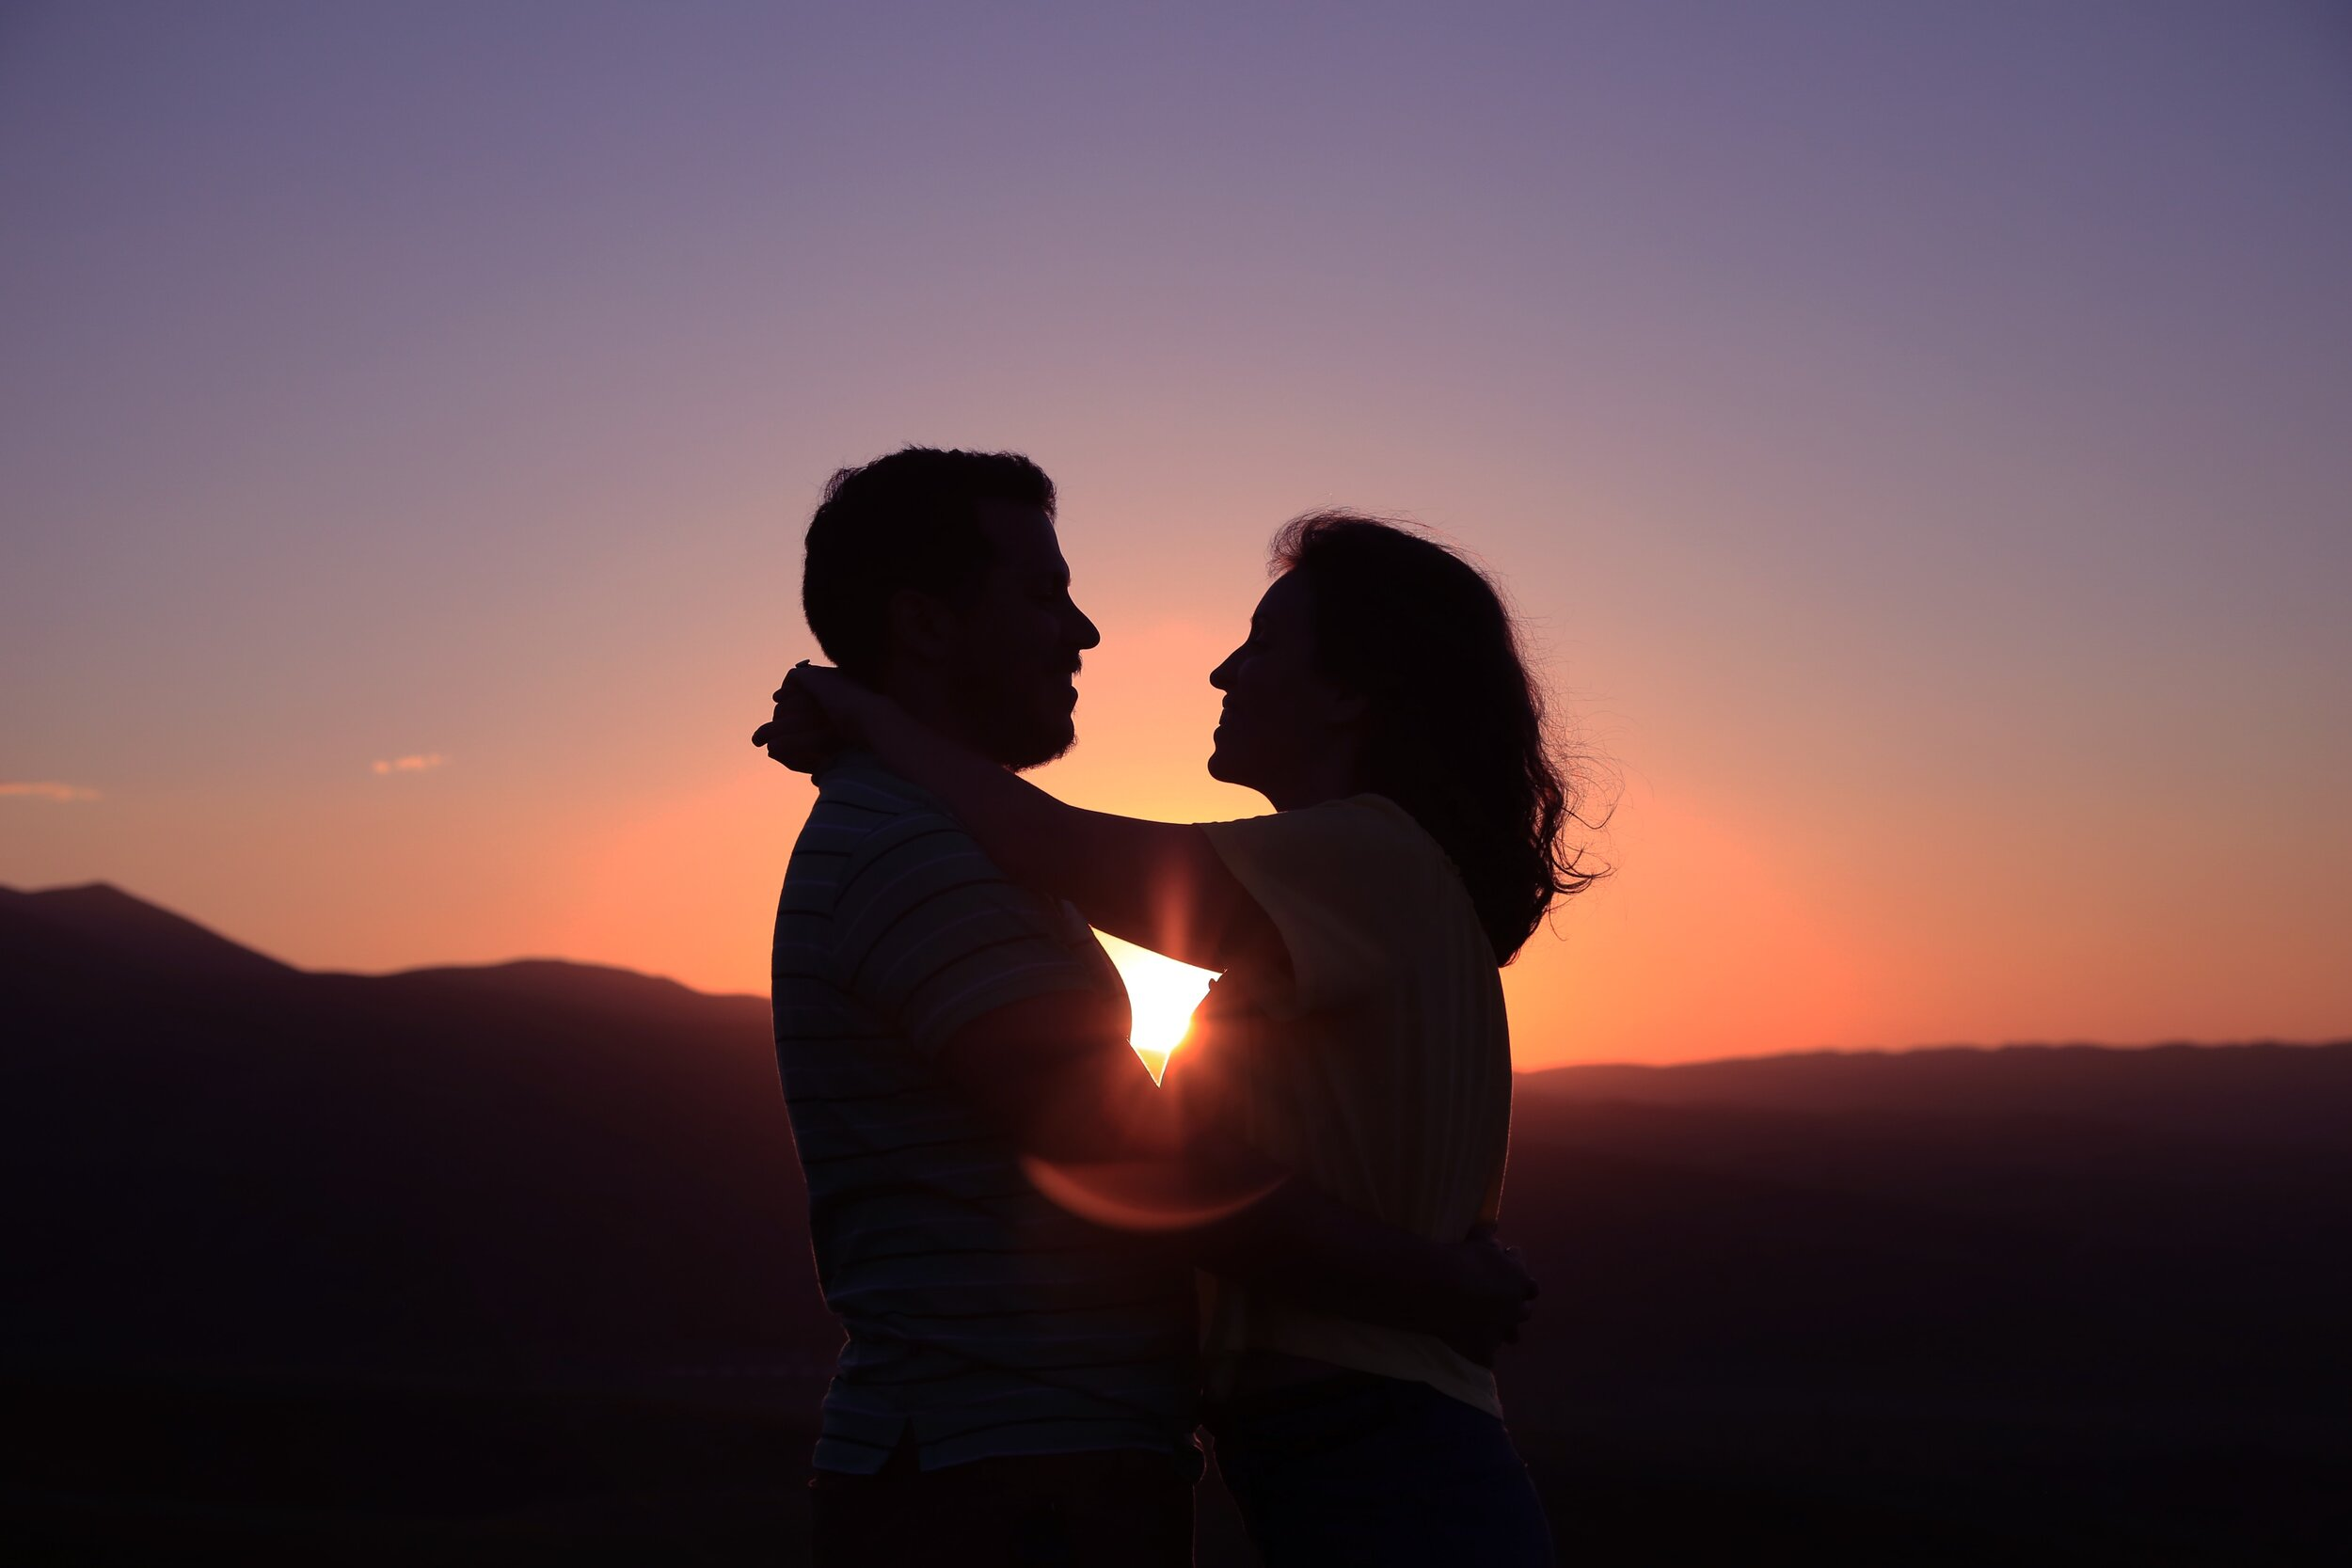 Love. Couple embracing in the sunset.